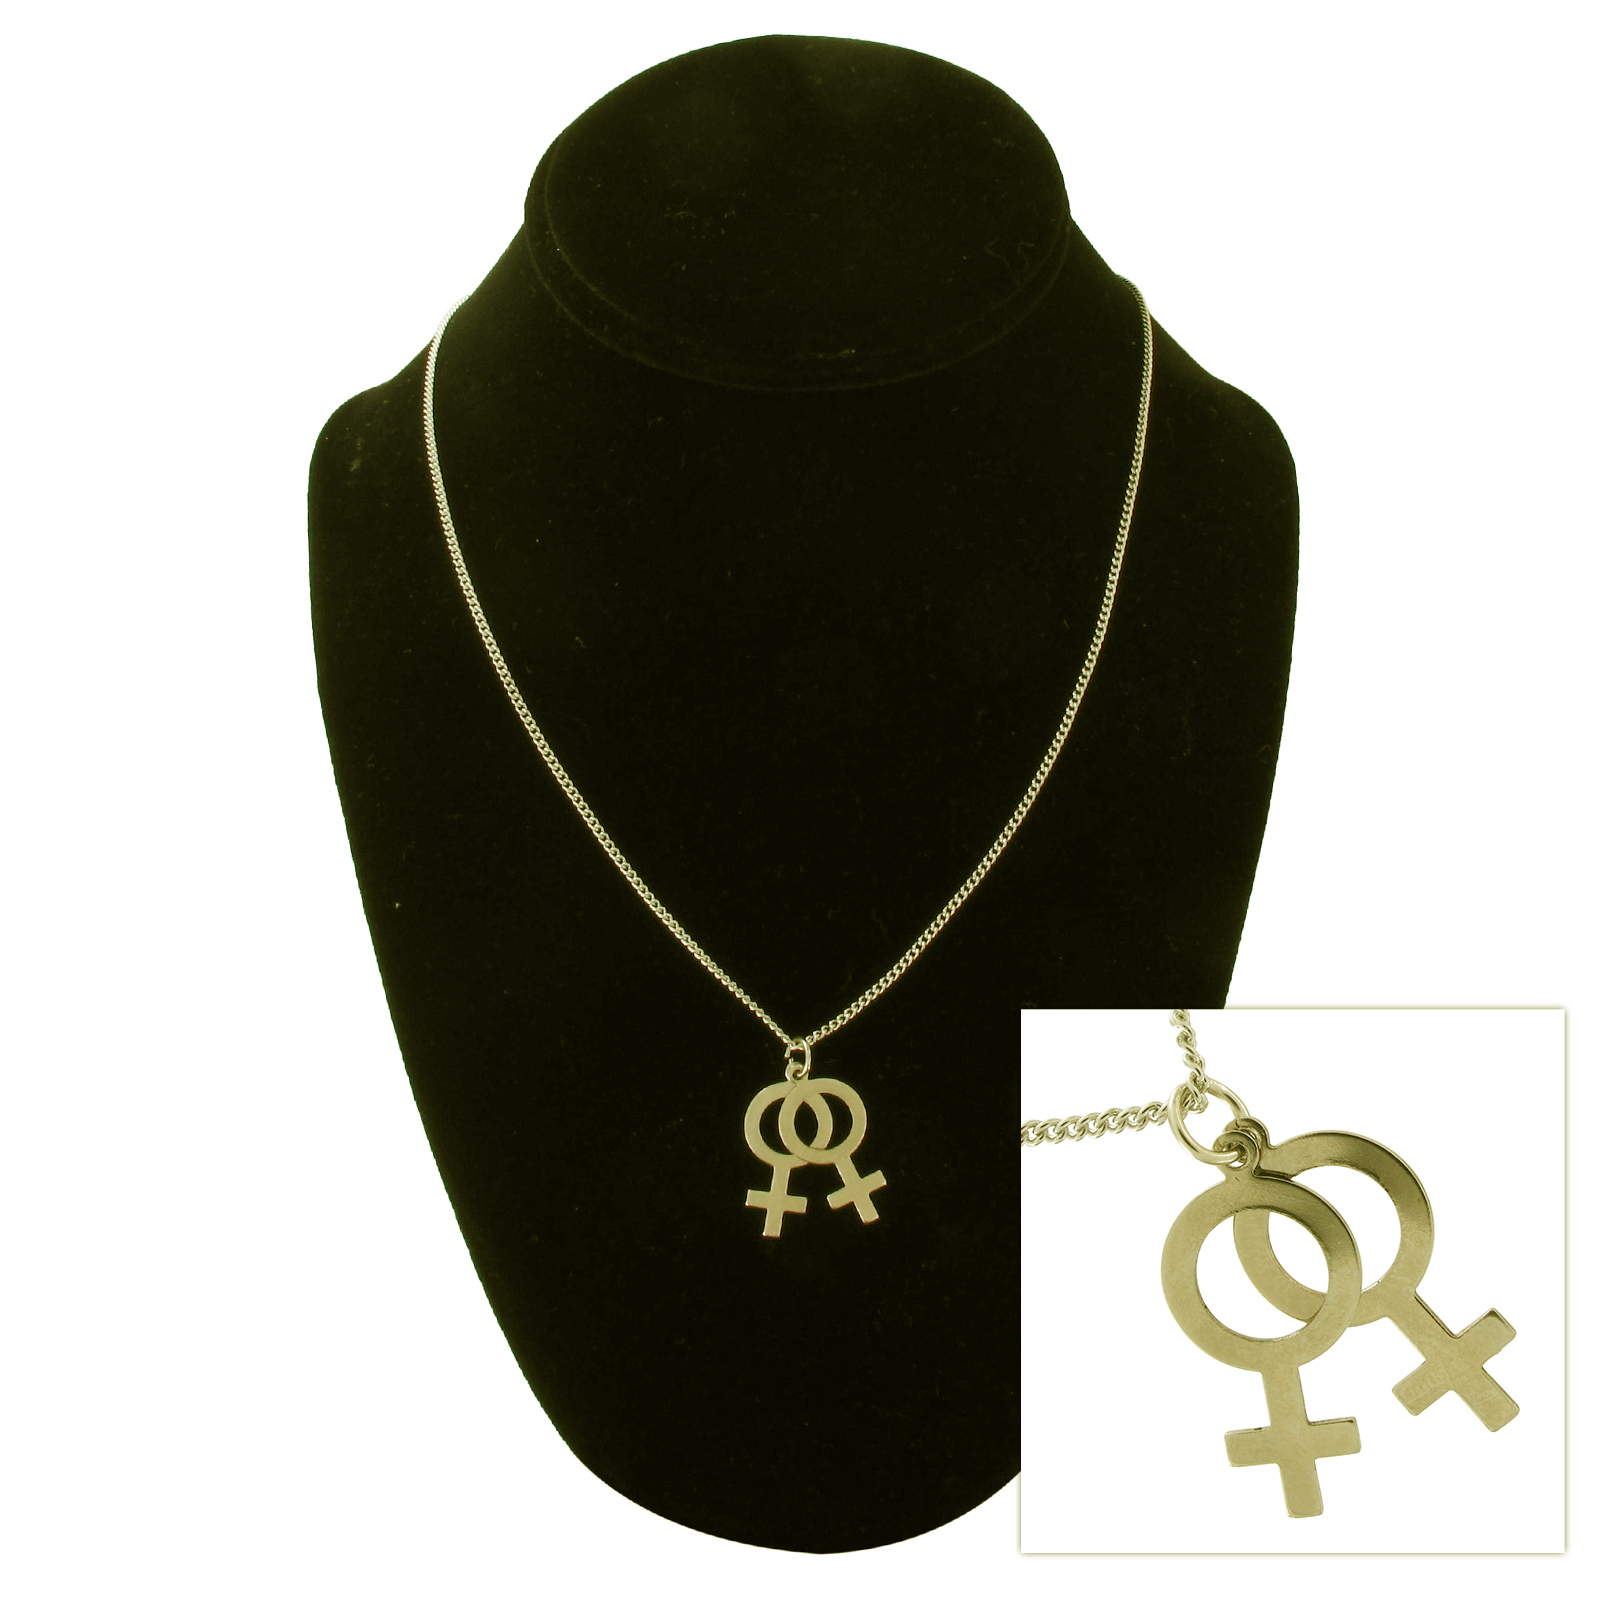 USA Made Gold Tone Lesbian Symbol Pendant Couple Necklace